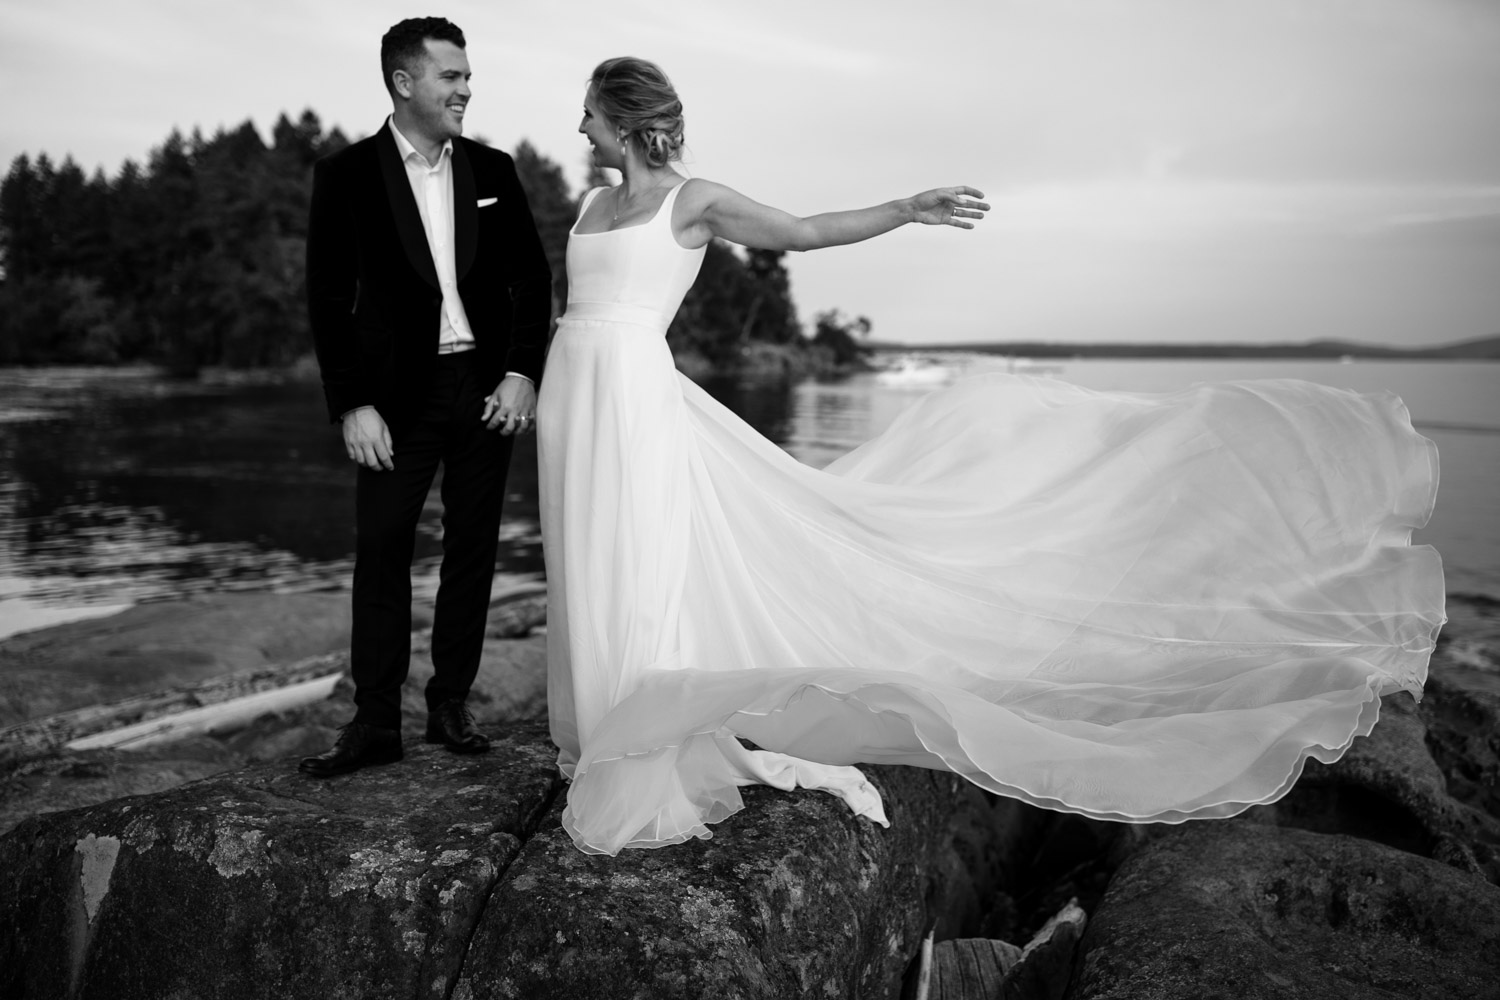 Candid Vancouver Island Wedding Photographer captures intimate beach wedding on Vancouver Island at beautiful venue and location with sea and mountain views